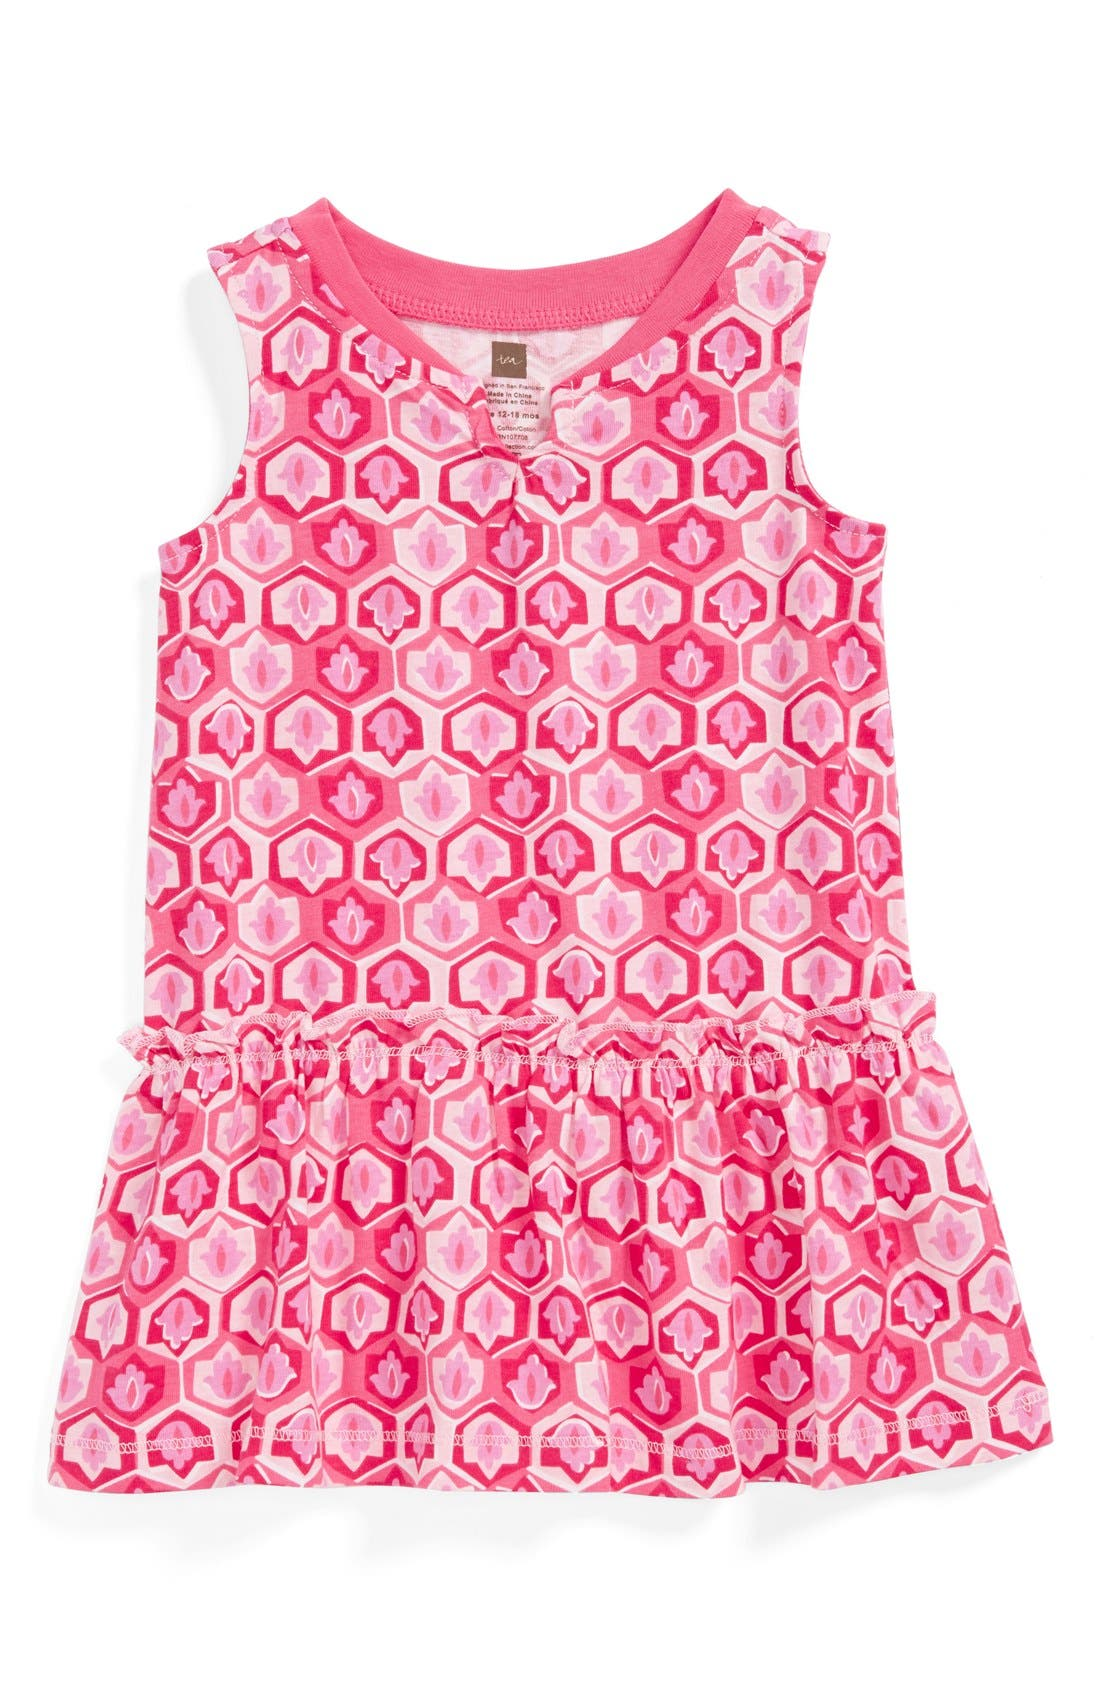 Alternate Image 1 Selected - Tea Collection 'Fatima' Drop Waist Dress (Baby Girls)